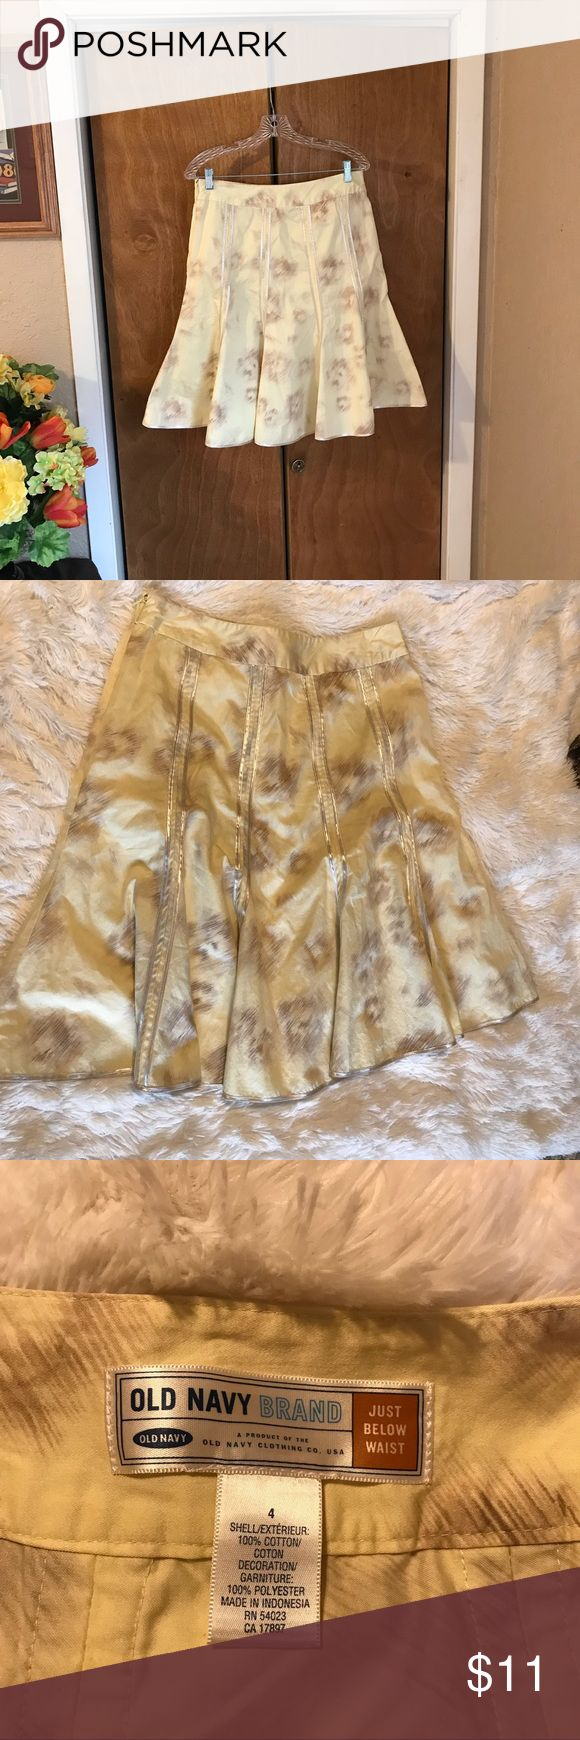 """Old Navy, Just Below The Waist Flair Bottom Skirt Excellent Condition  Shell: 100% Cotton Decoration: 100% Polyester  Measured Flat: Waist 15 1/2""""Length: 24"""" Old Navy Skirts Midi"""